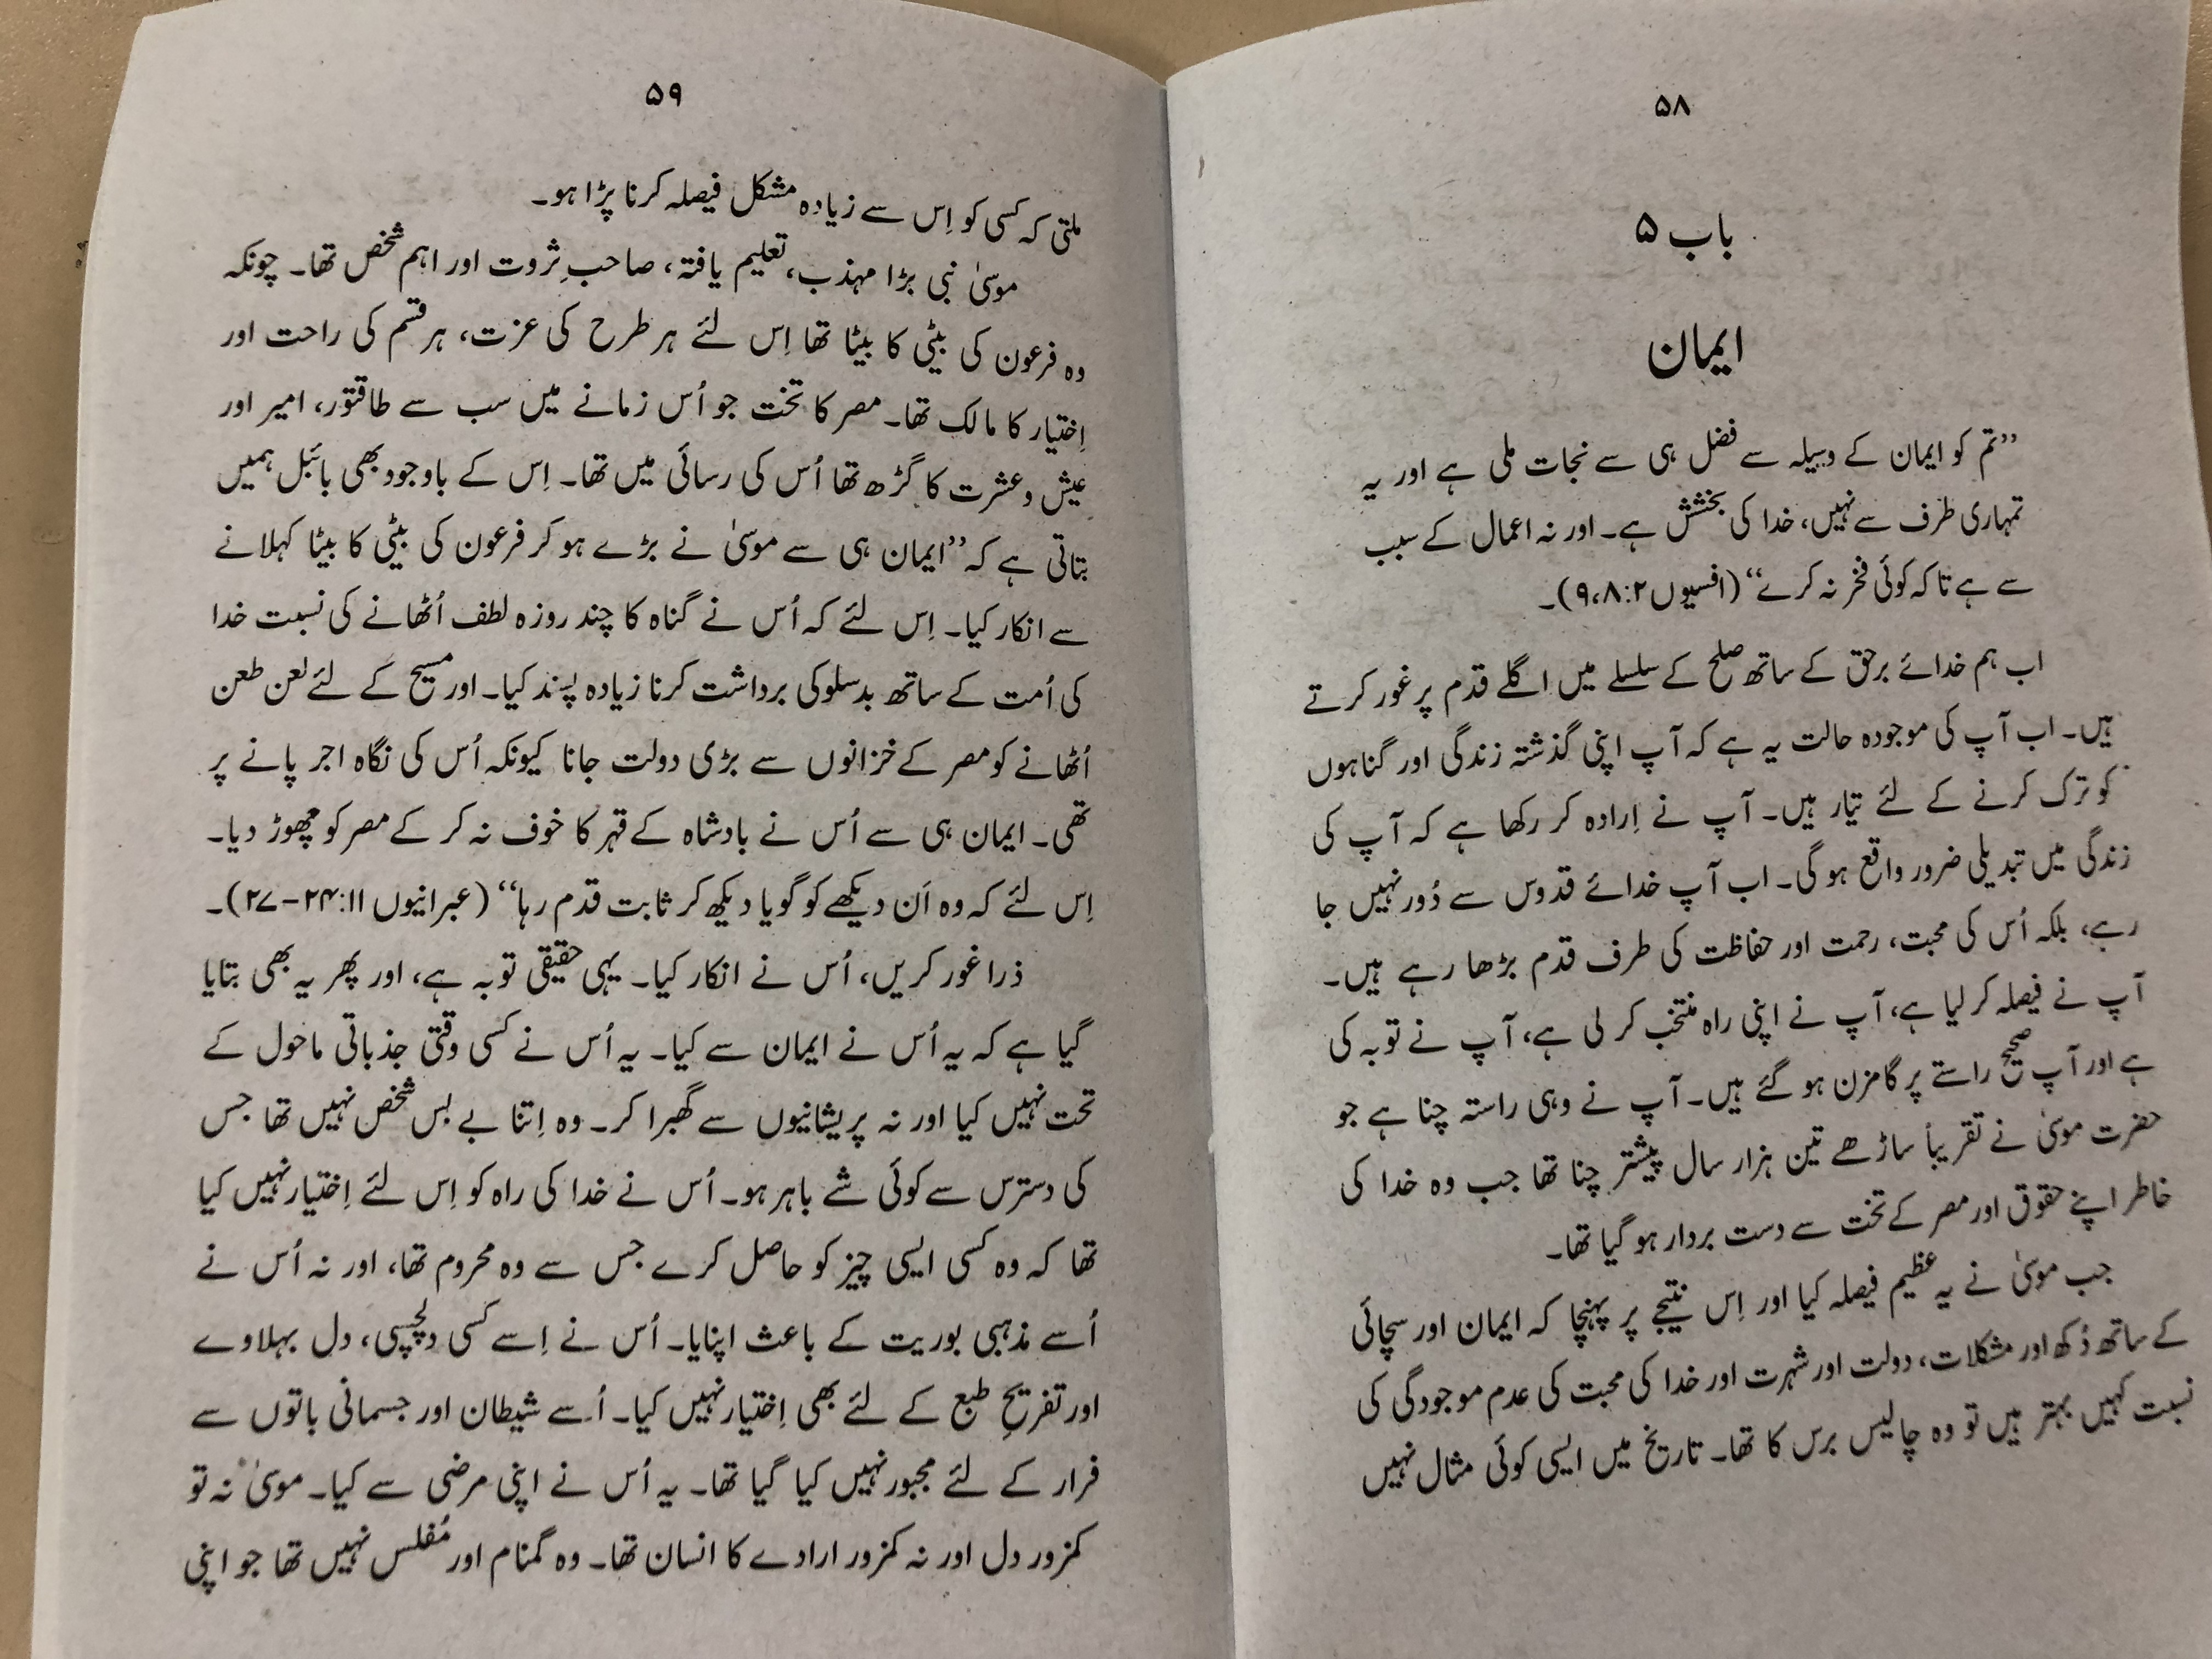 six-chapters-from-peace-with-god-by-billy-graham-in-urdu-7-.jpg